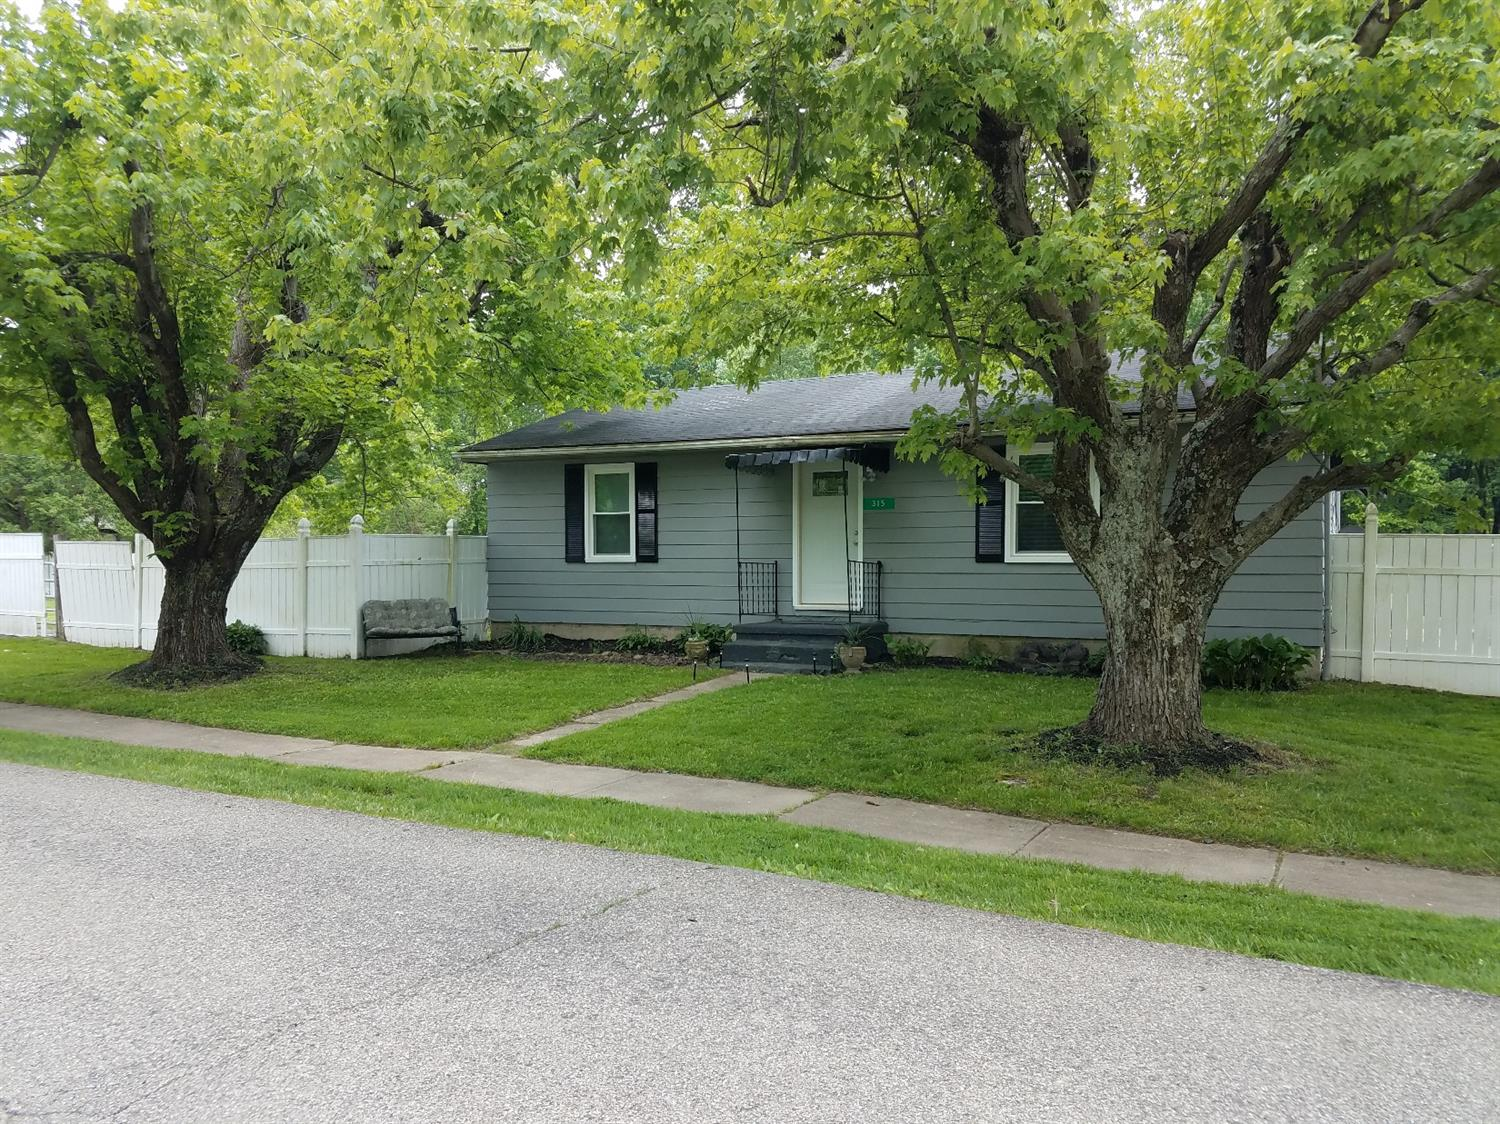 315 W Main St Wayne Twp. (Clermont Co.), OH